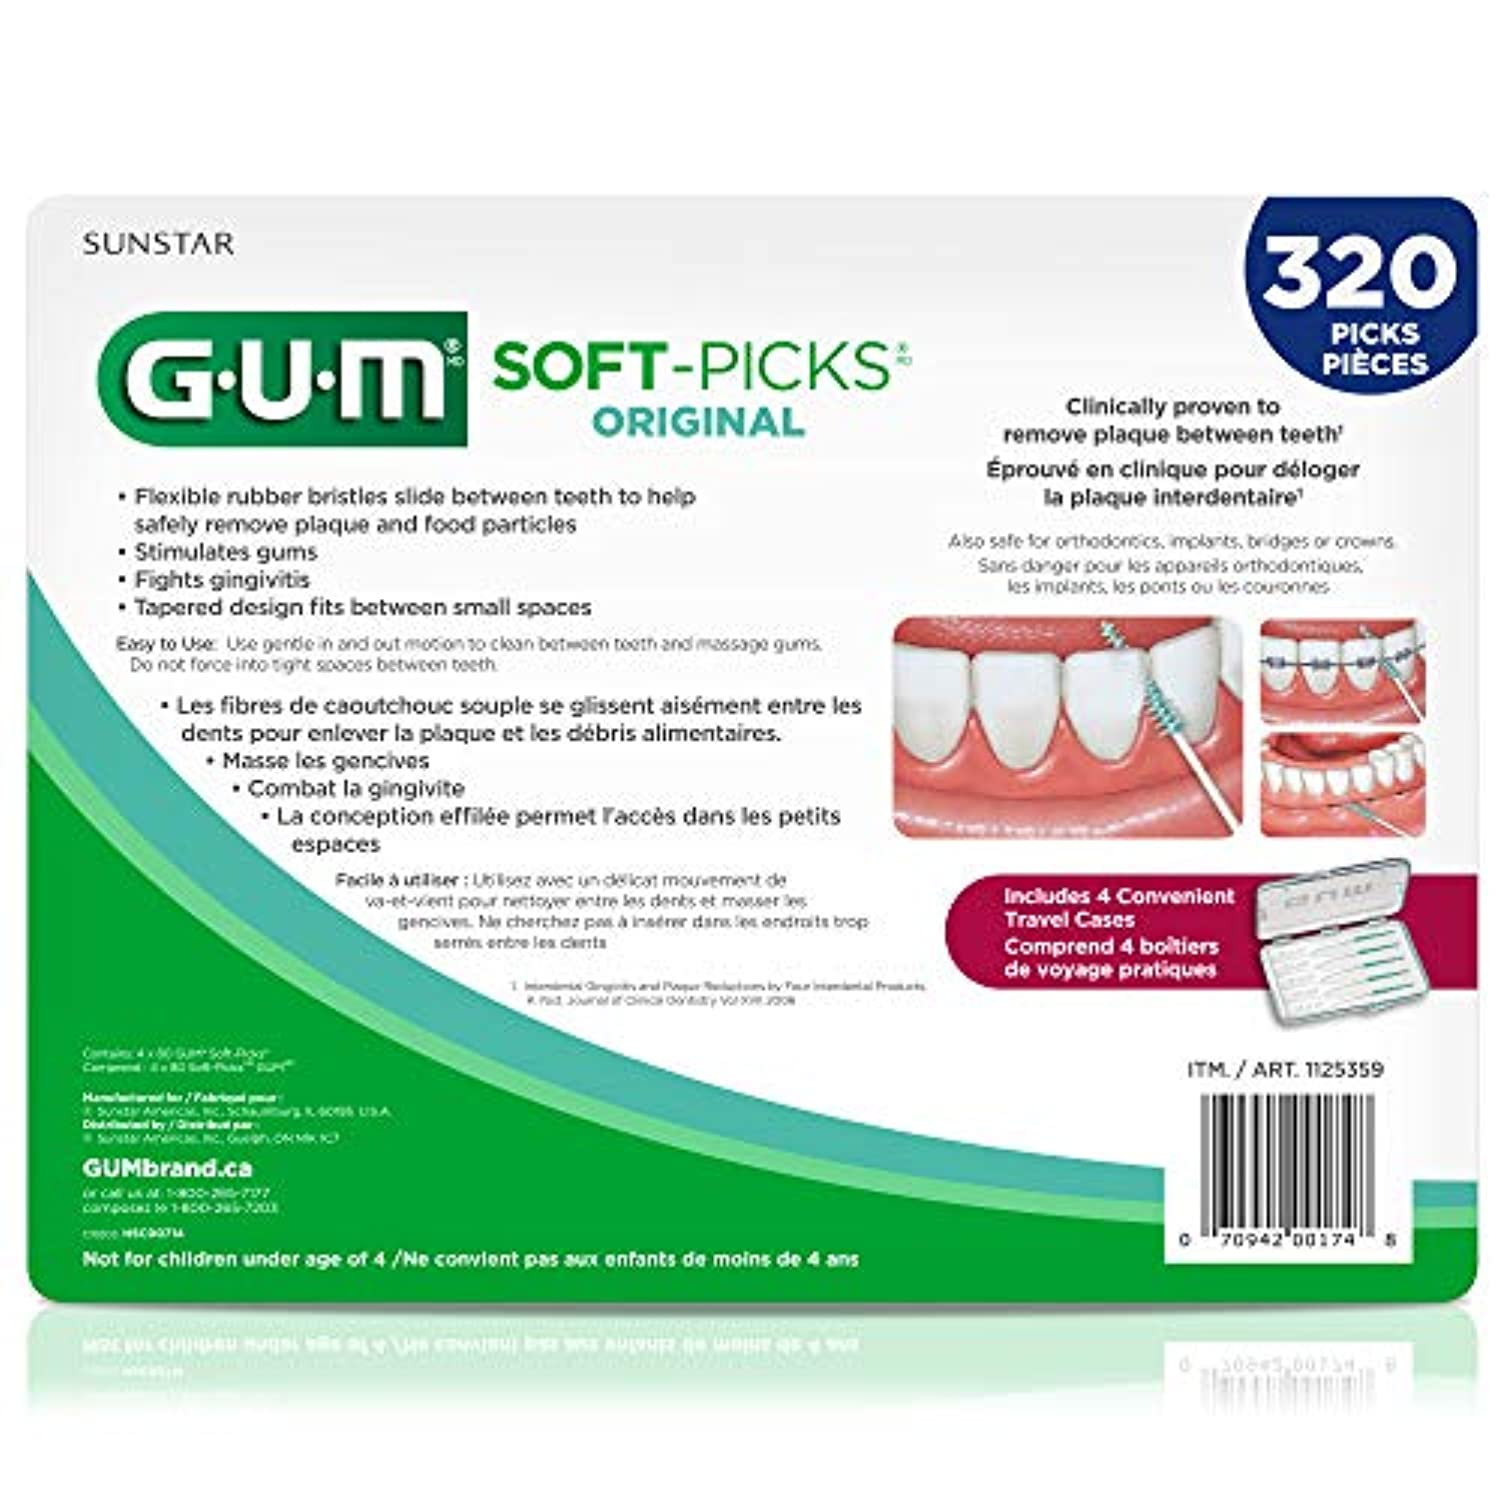 Classier: Buy GUM GUM Soft-Picks Original Dental Picks, 320 Count